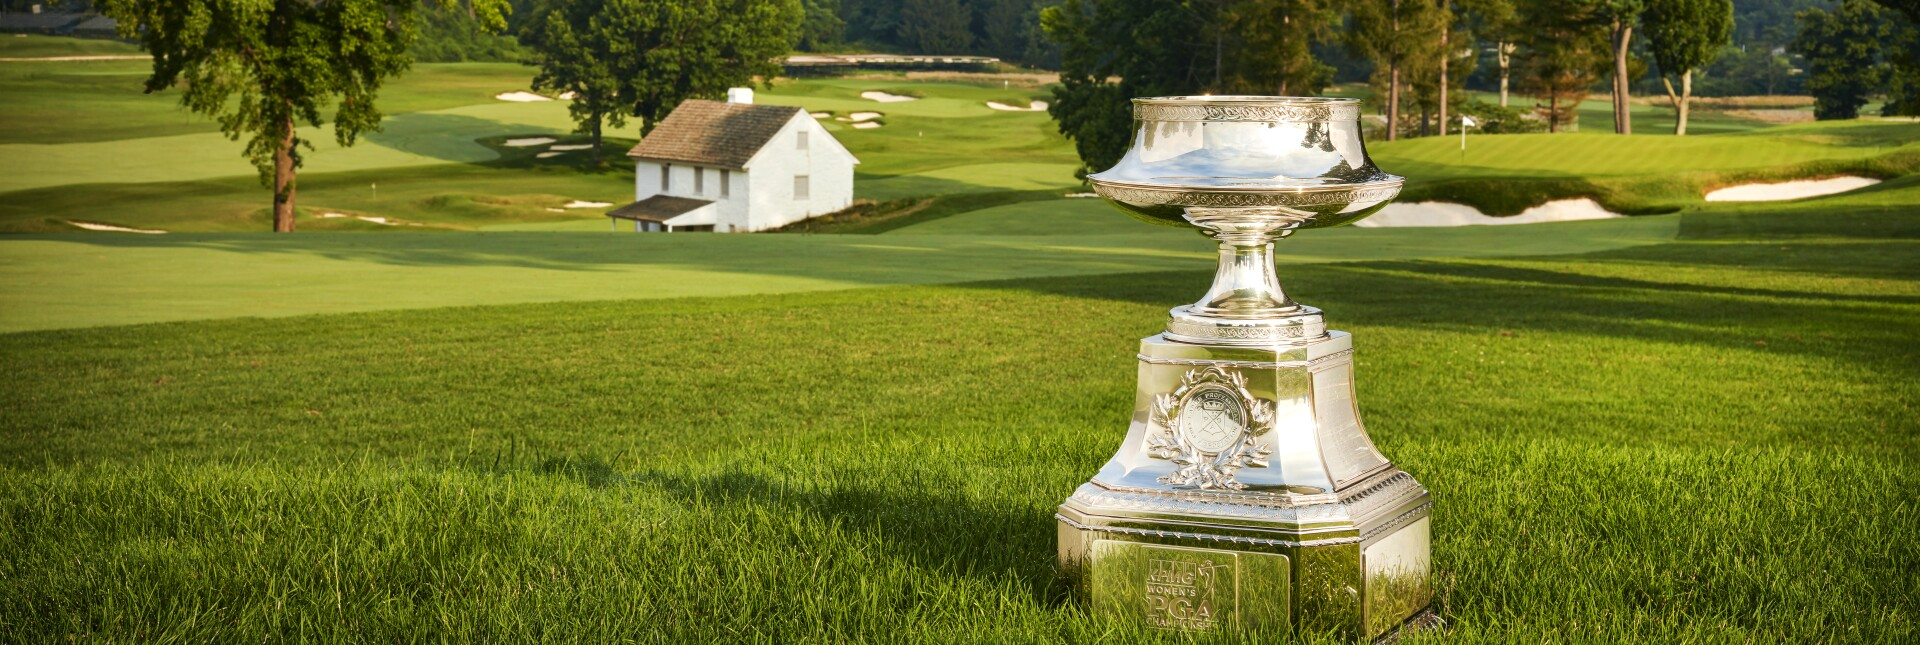 Aronimink Trophy Shot